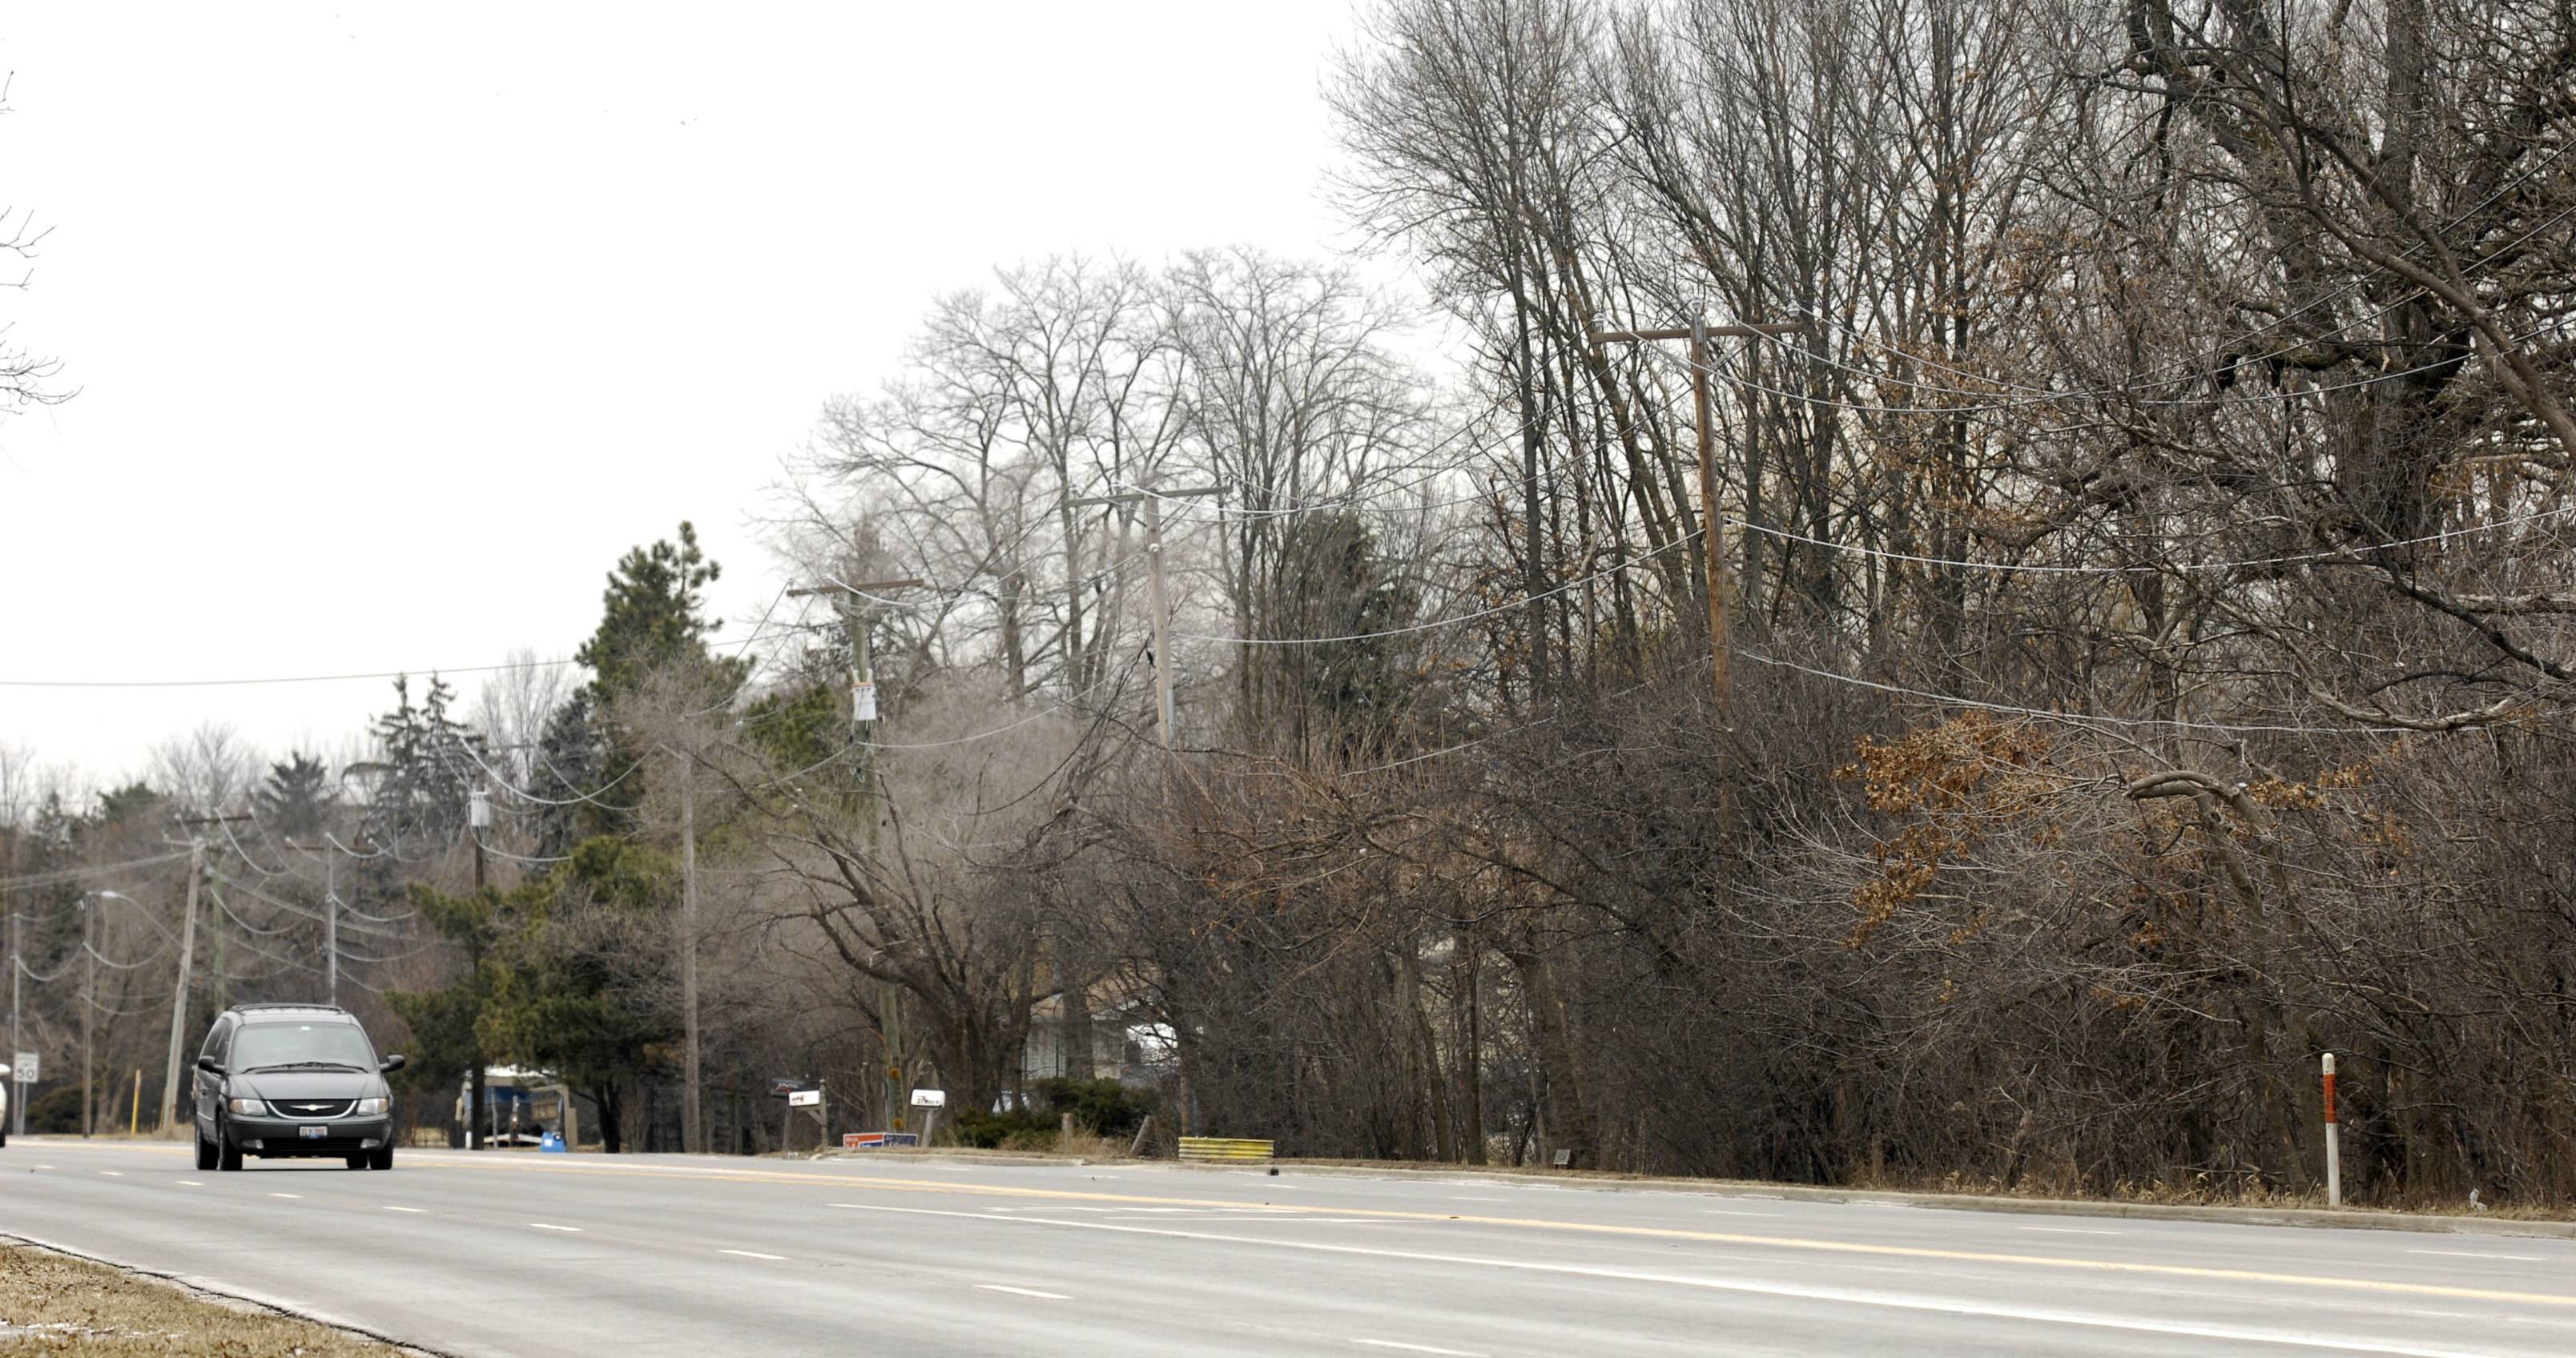 A new comprehensive plan approved last week by Winfield trustees is recommending a commercial focus with some higher density housing along part of Roosevelt Road in Winfield.